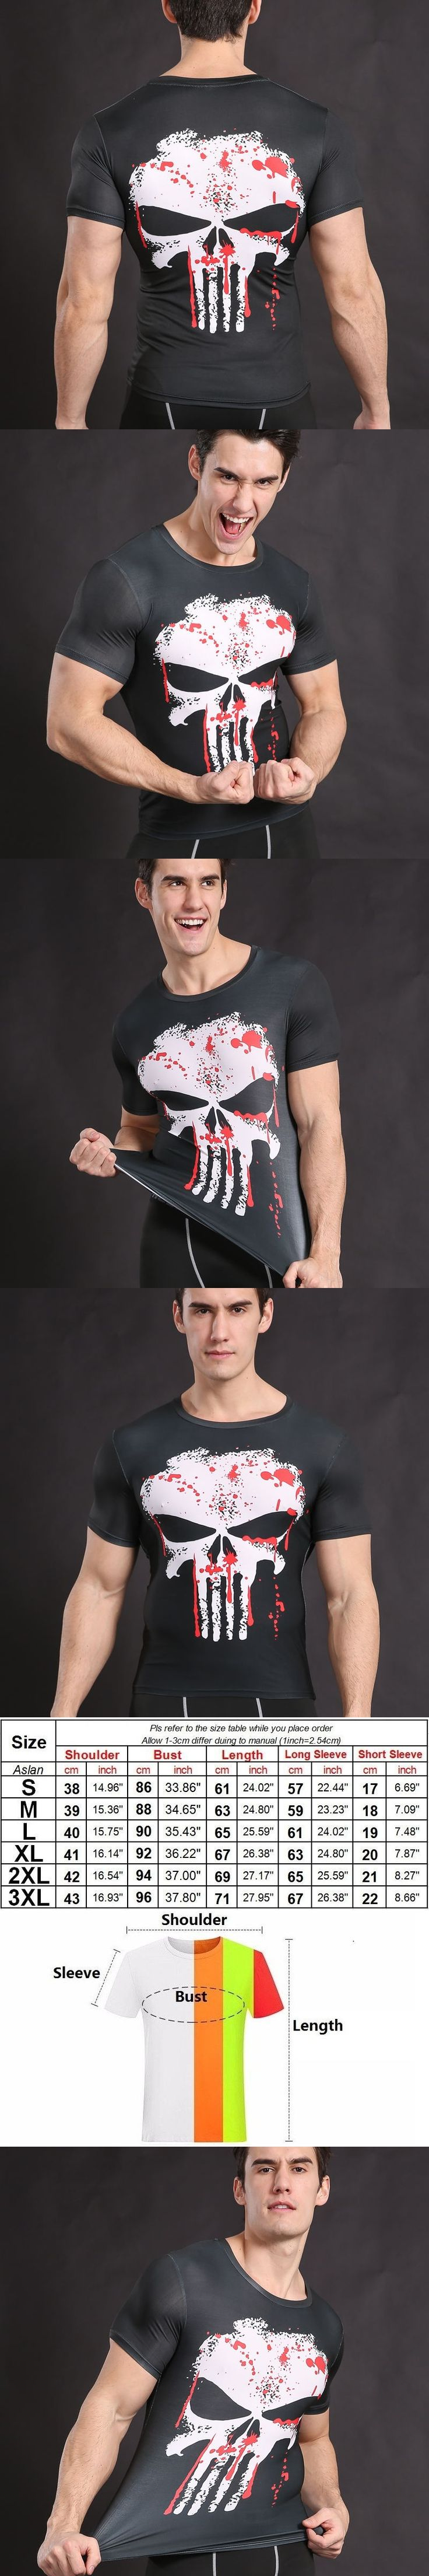 Newest Trasher t-shirt Men 3D Printed T-shirts Short Sleeve Cosplay Fitness Body Building Male Crossfit Tops Punk Skull Skeleton